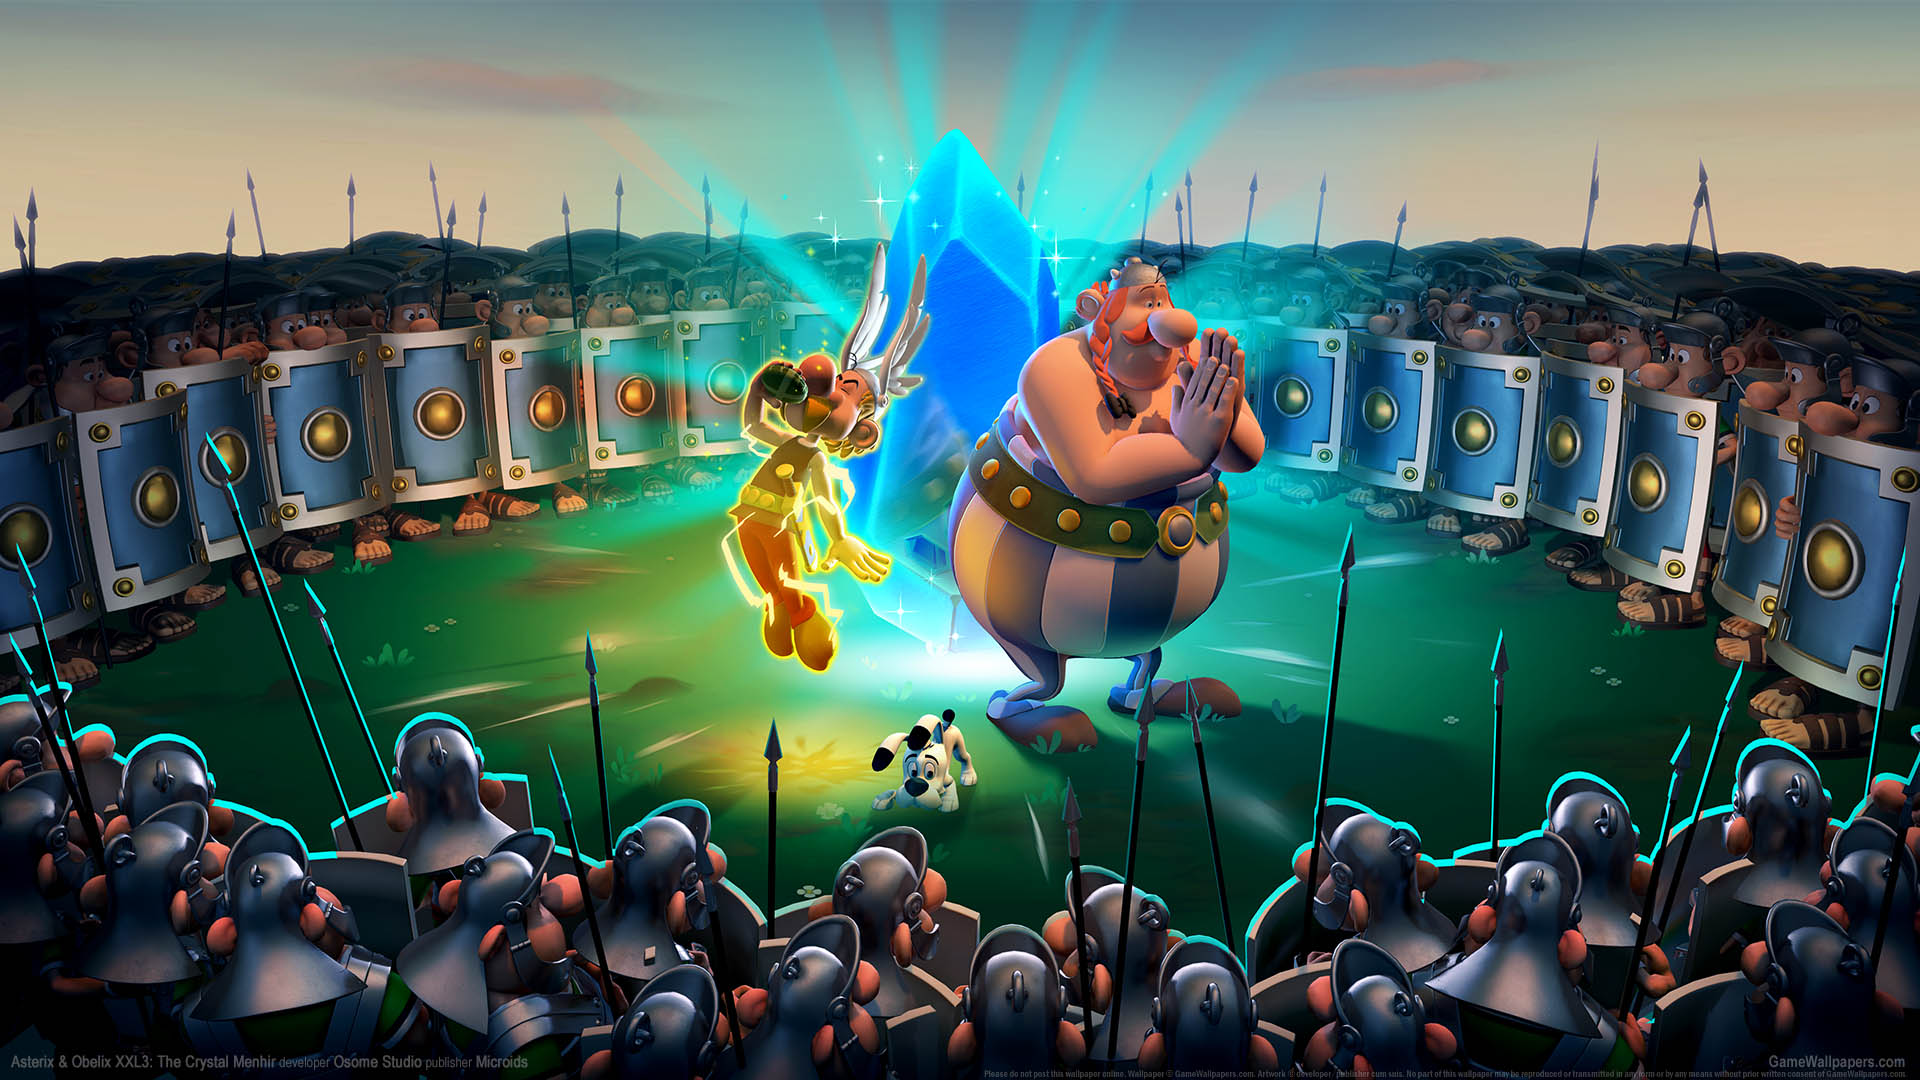 Asterix & Obelix XXL3: The Crystal Menhir wallpaper 01 1920x1080